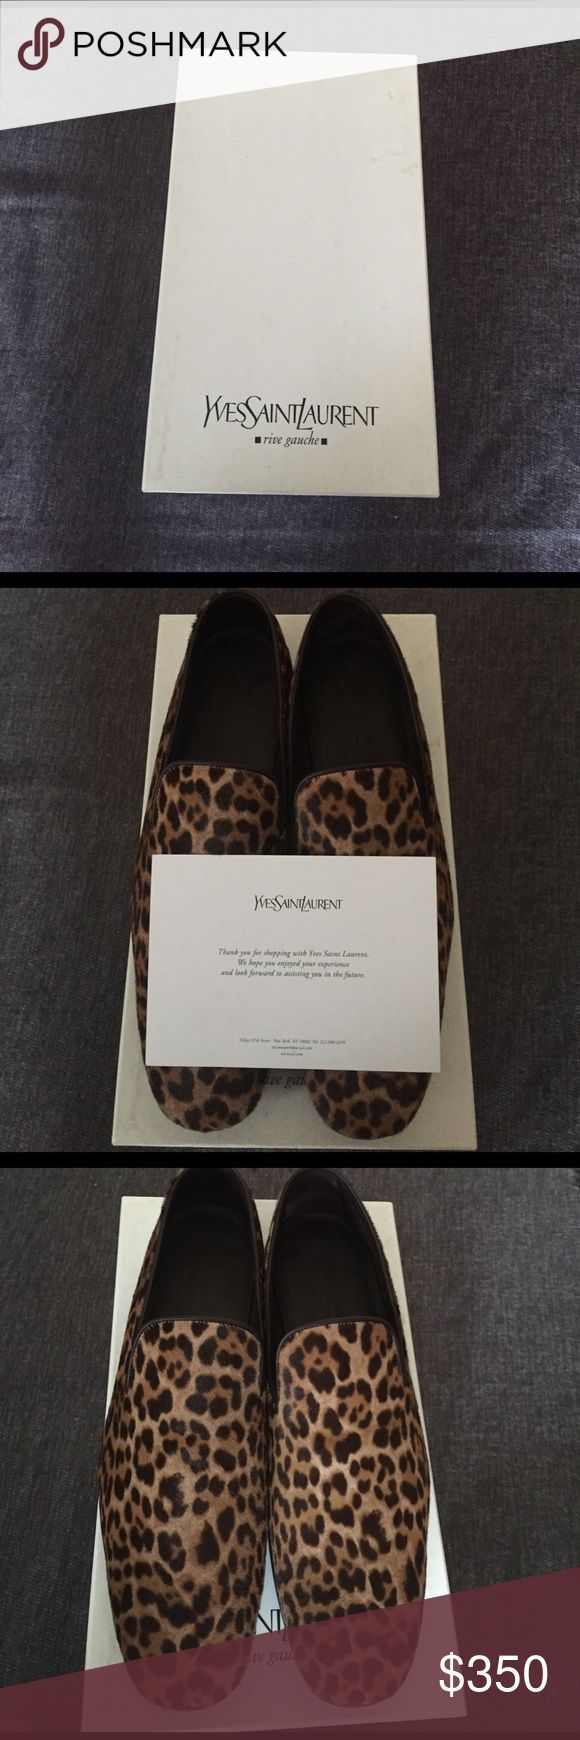 Authentic Yves Saint Laurent Loafers Gently worn Authentic Yves Saint Laurent Leopard Slip-On shoes Yves Saint Laurent Shoes Loafers & Slip-Ons